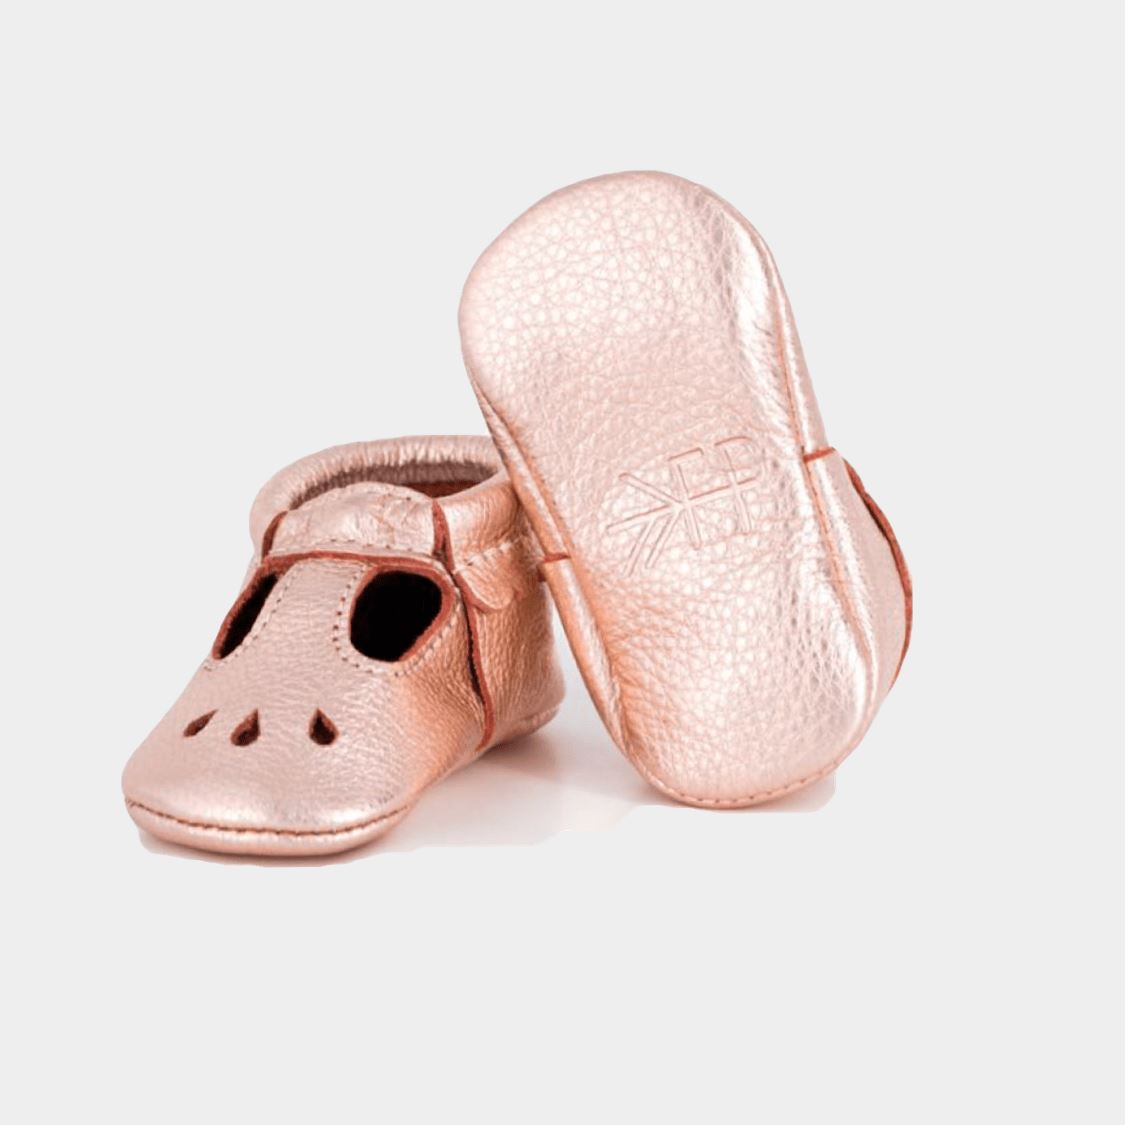 Freshly Picked -Rose Gold Mary Janes (24-36 Months) footwear Freshly Picked